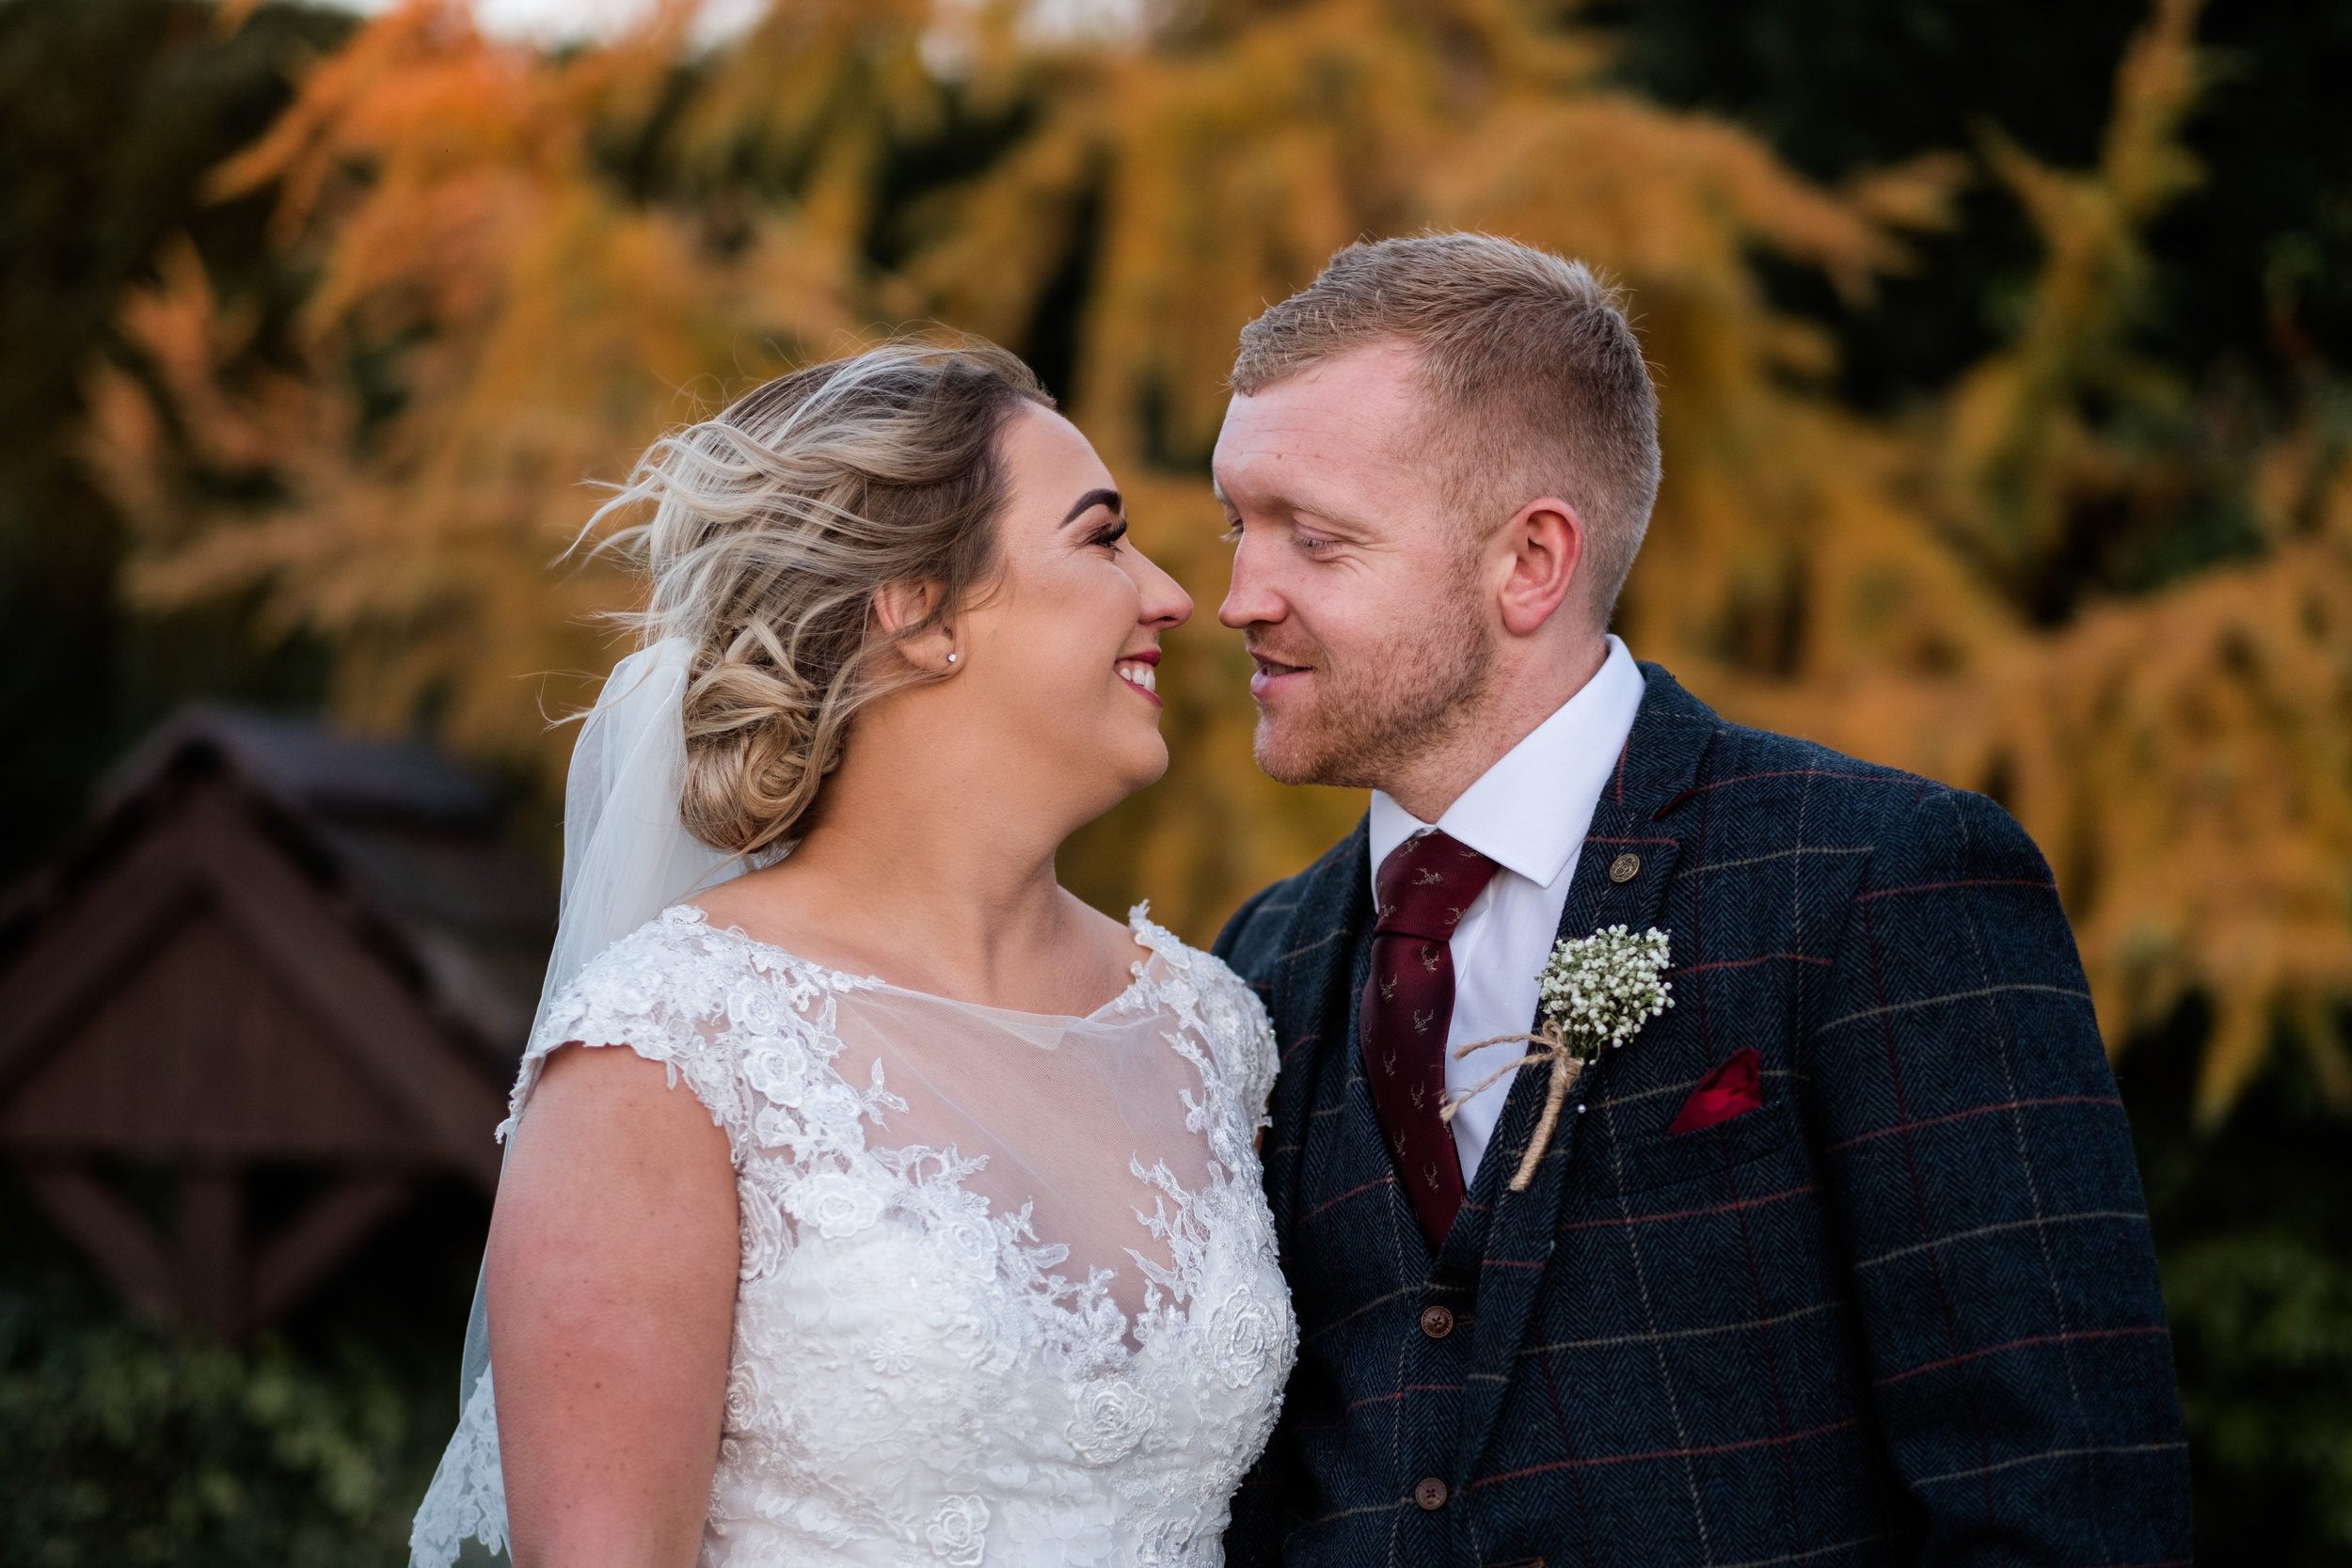 Autumn Wedding Photography at The Three Horseshoes, Blackshaw Moor, Staffordshire Moorlands - Jenny Harper-38.jpg